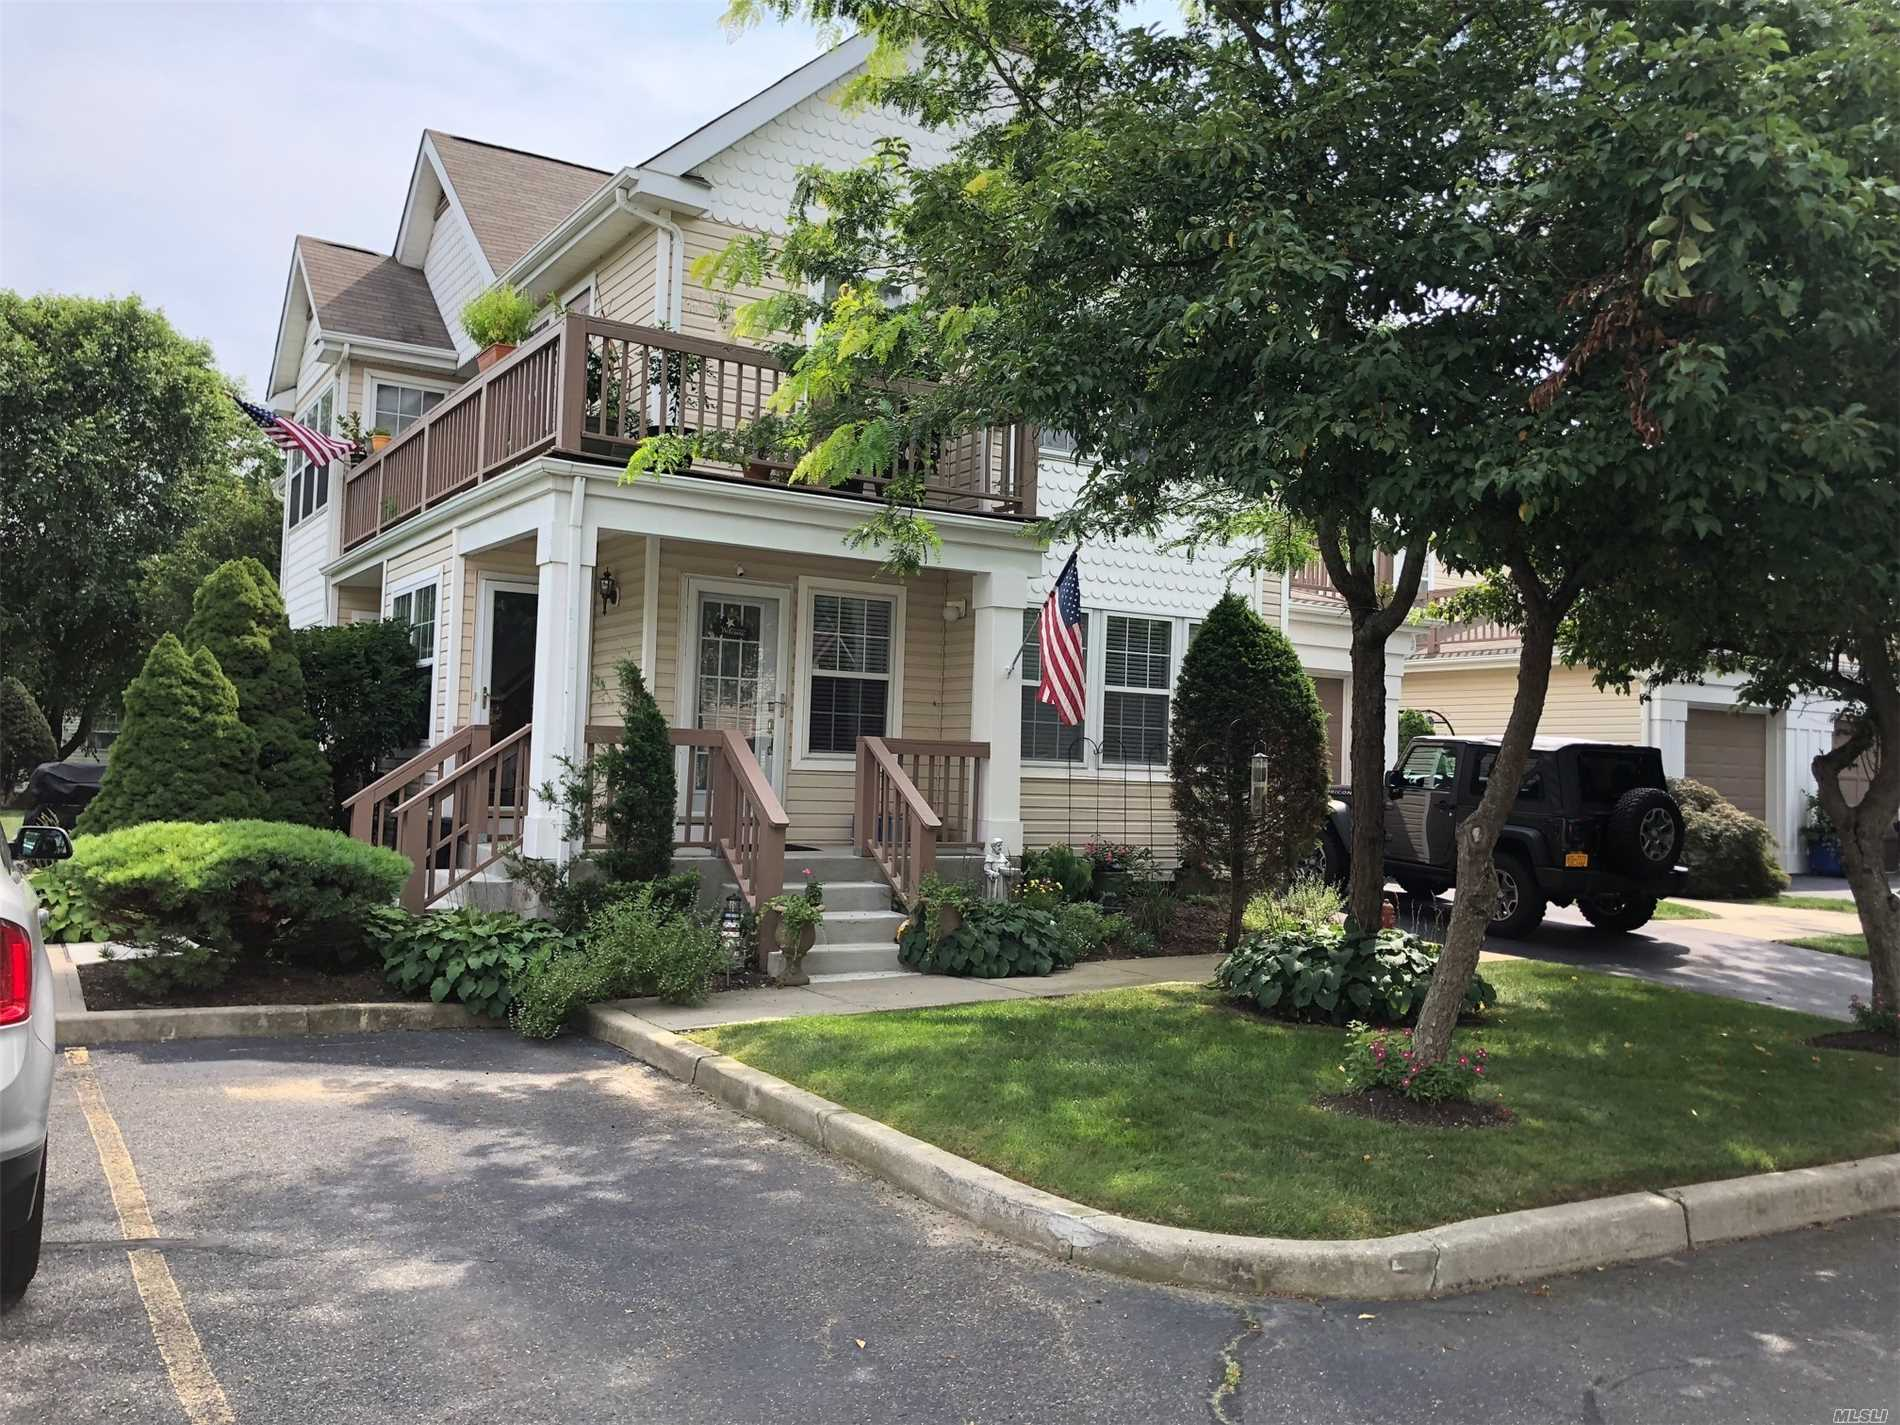 Property for sale at 97 Commodore Cir, Pt.Jefferson Sta,  NY 11776